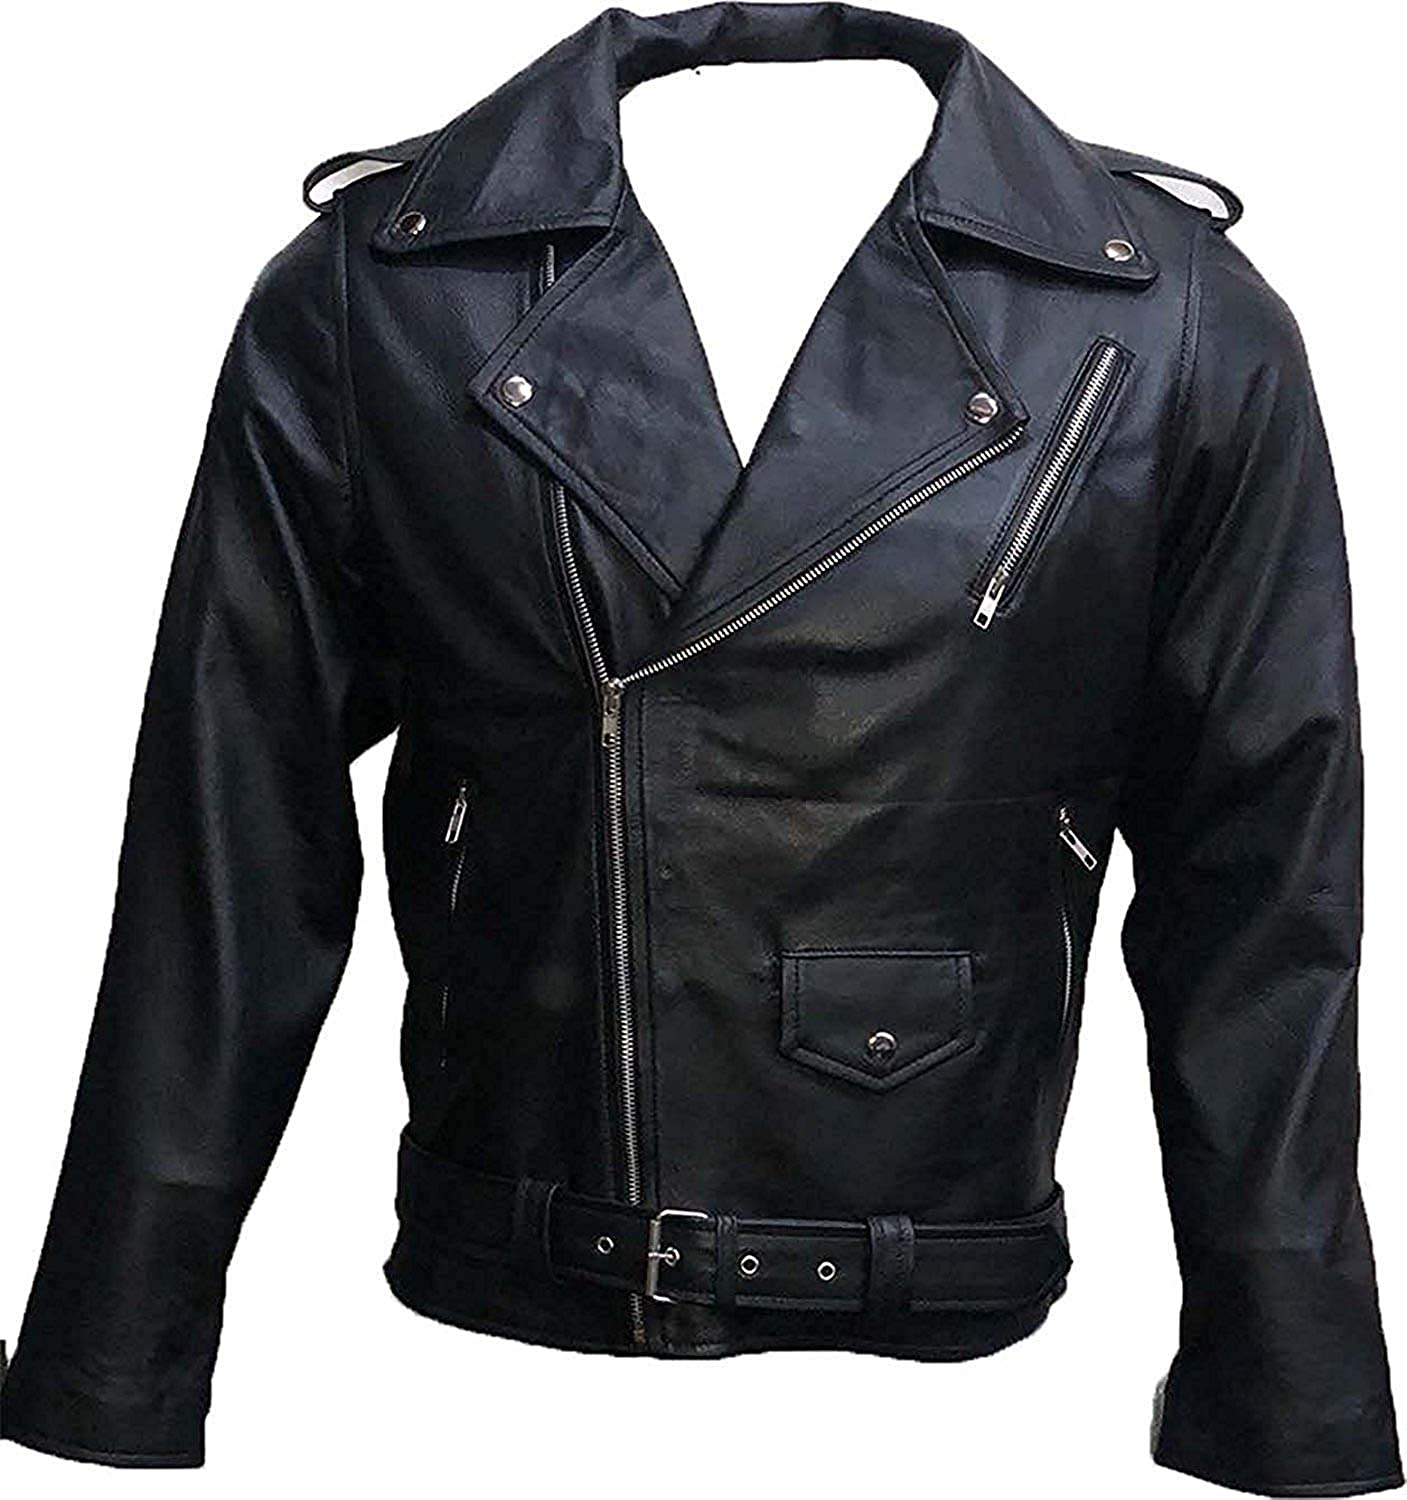 Cling Outfitters Mens Southside Black Faux Leather Jacket with Snake Gang Logo